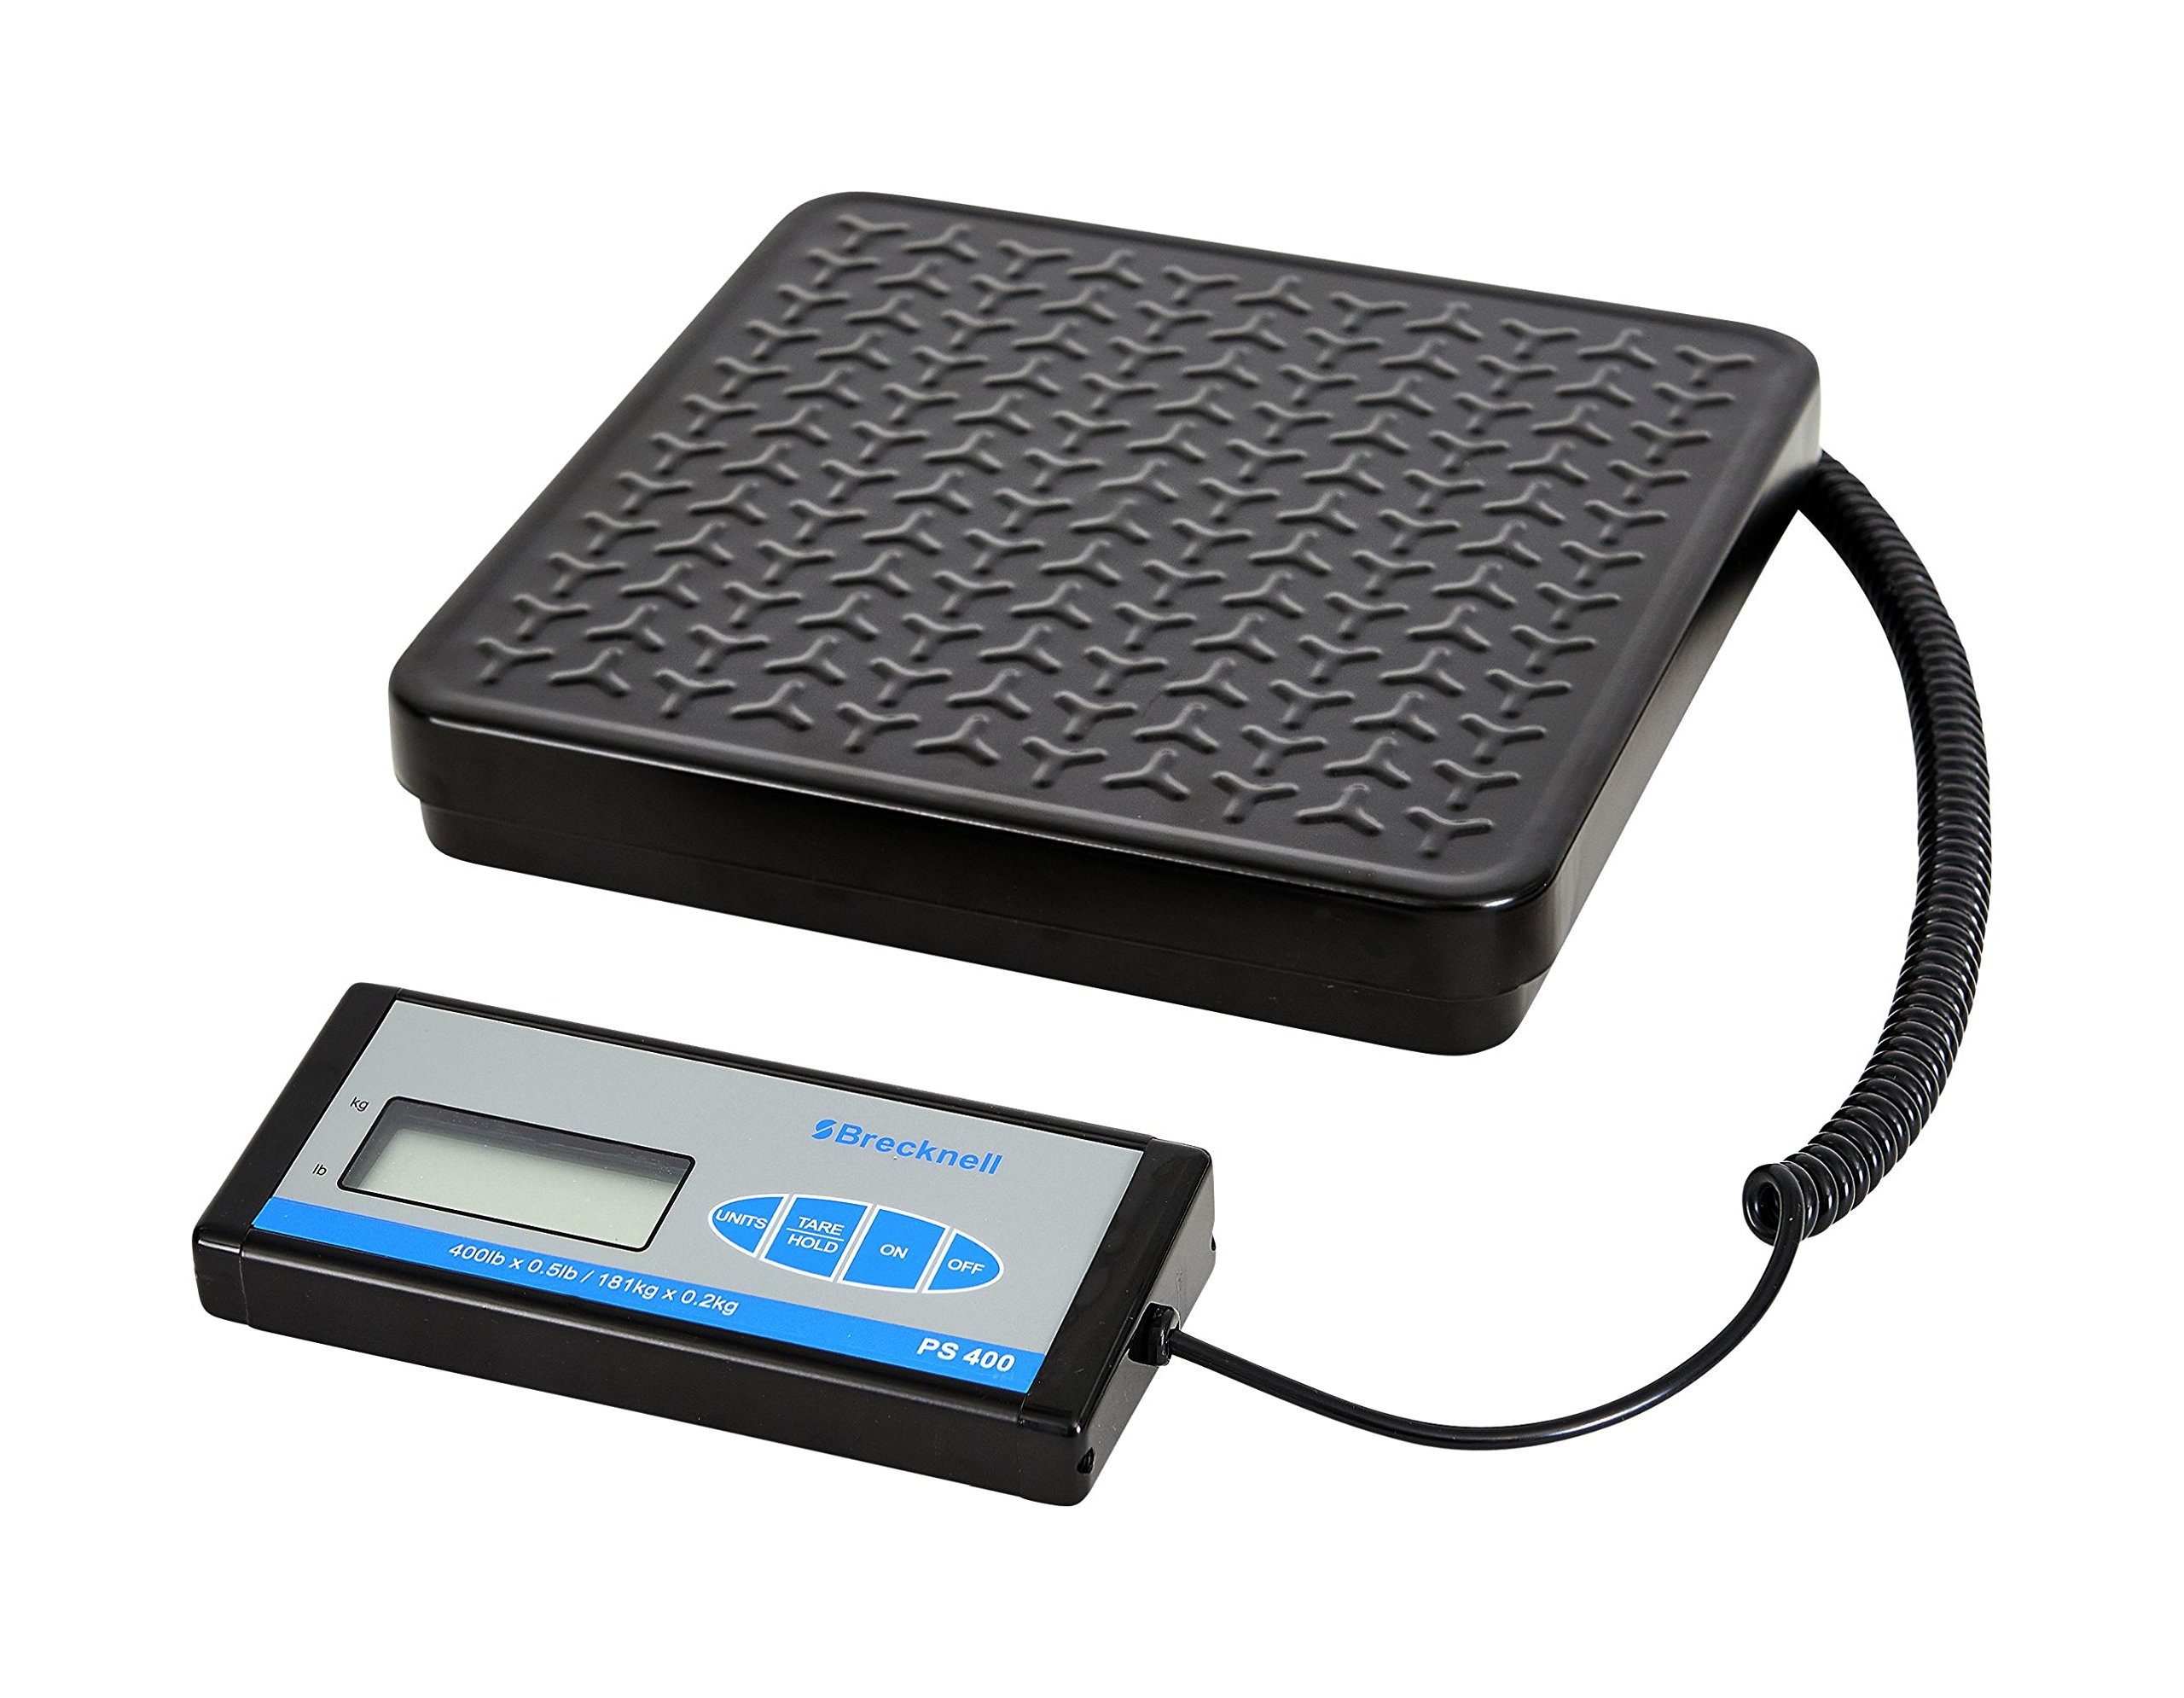 Brecknell PS400 Portable Bench Scale; up to 400lb. Capacity, Perfect for Shipping, Warehouse applications Plus General Purpose Weighing by Brecknell